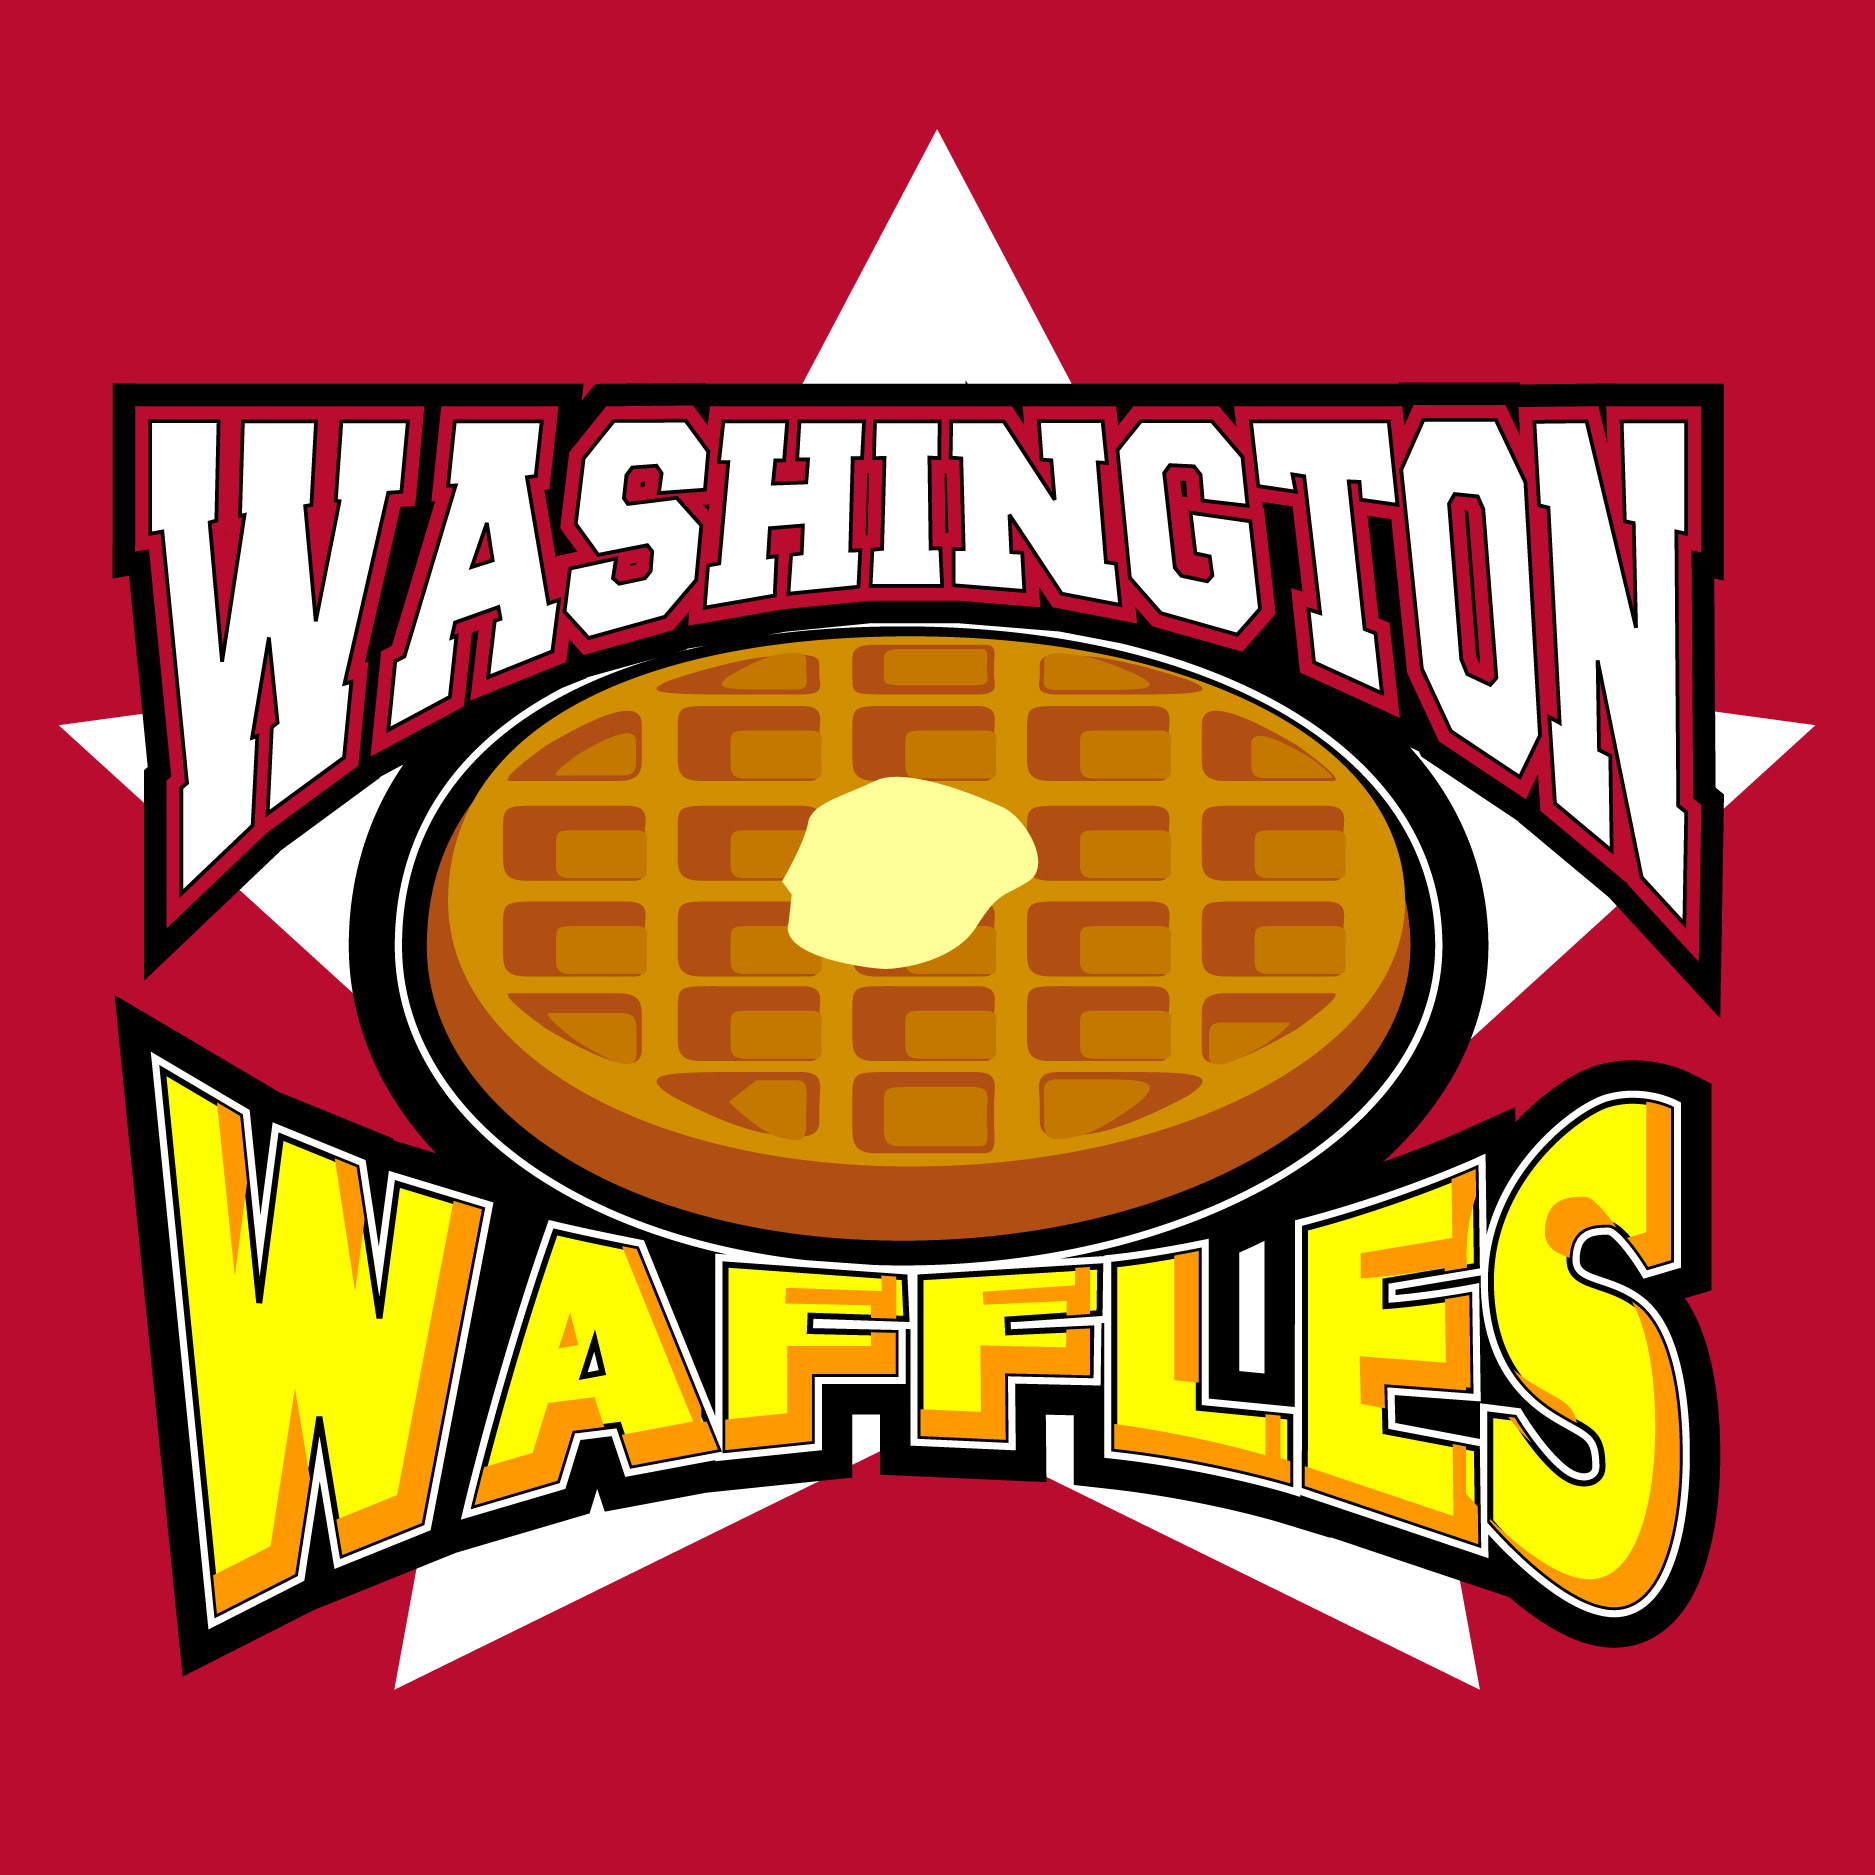 Washington Waffles